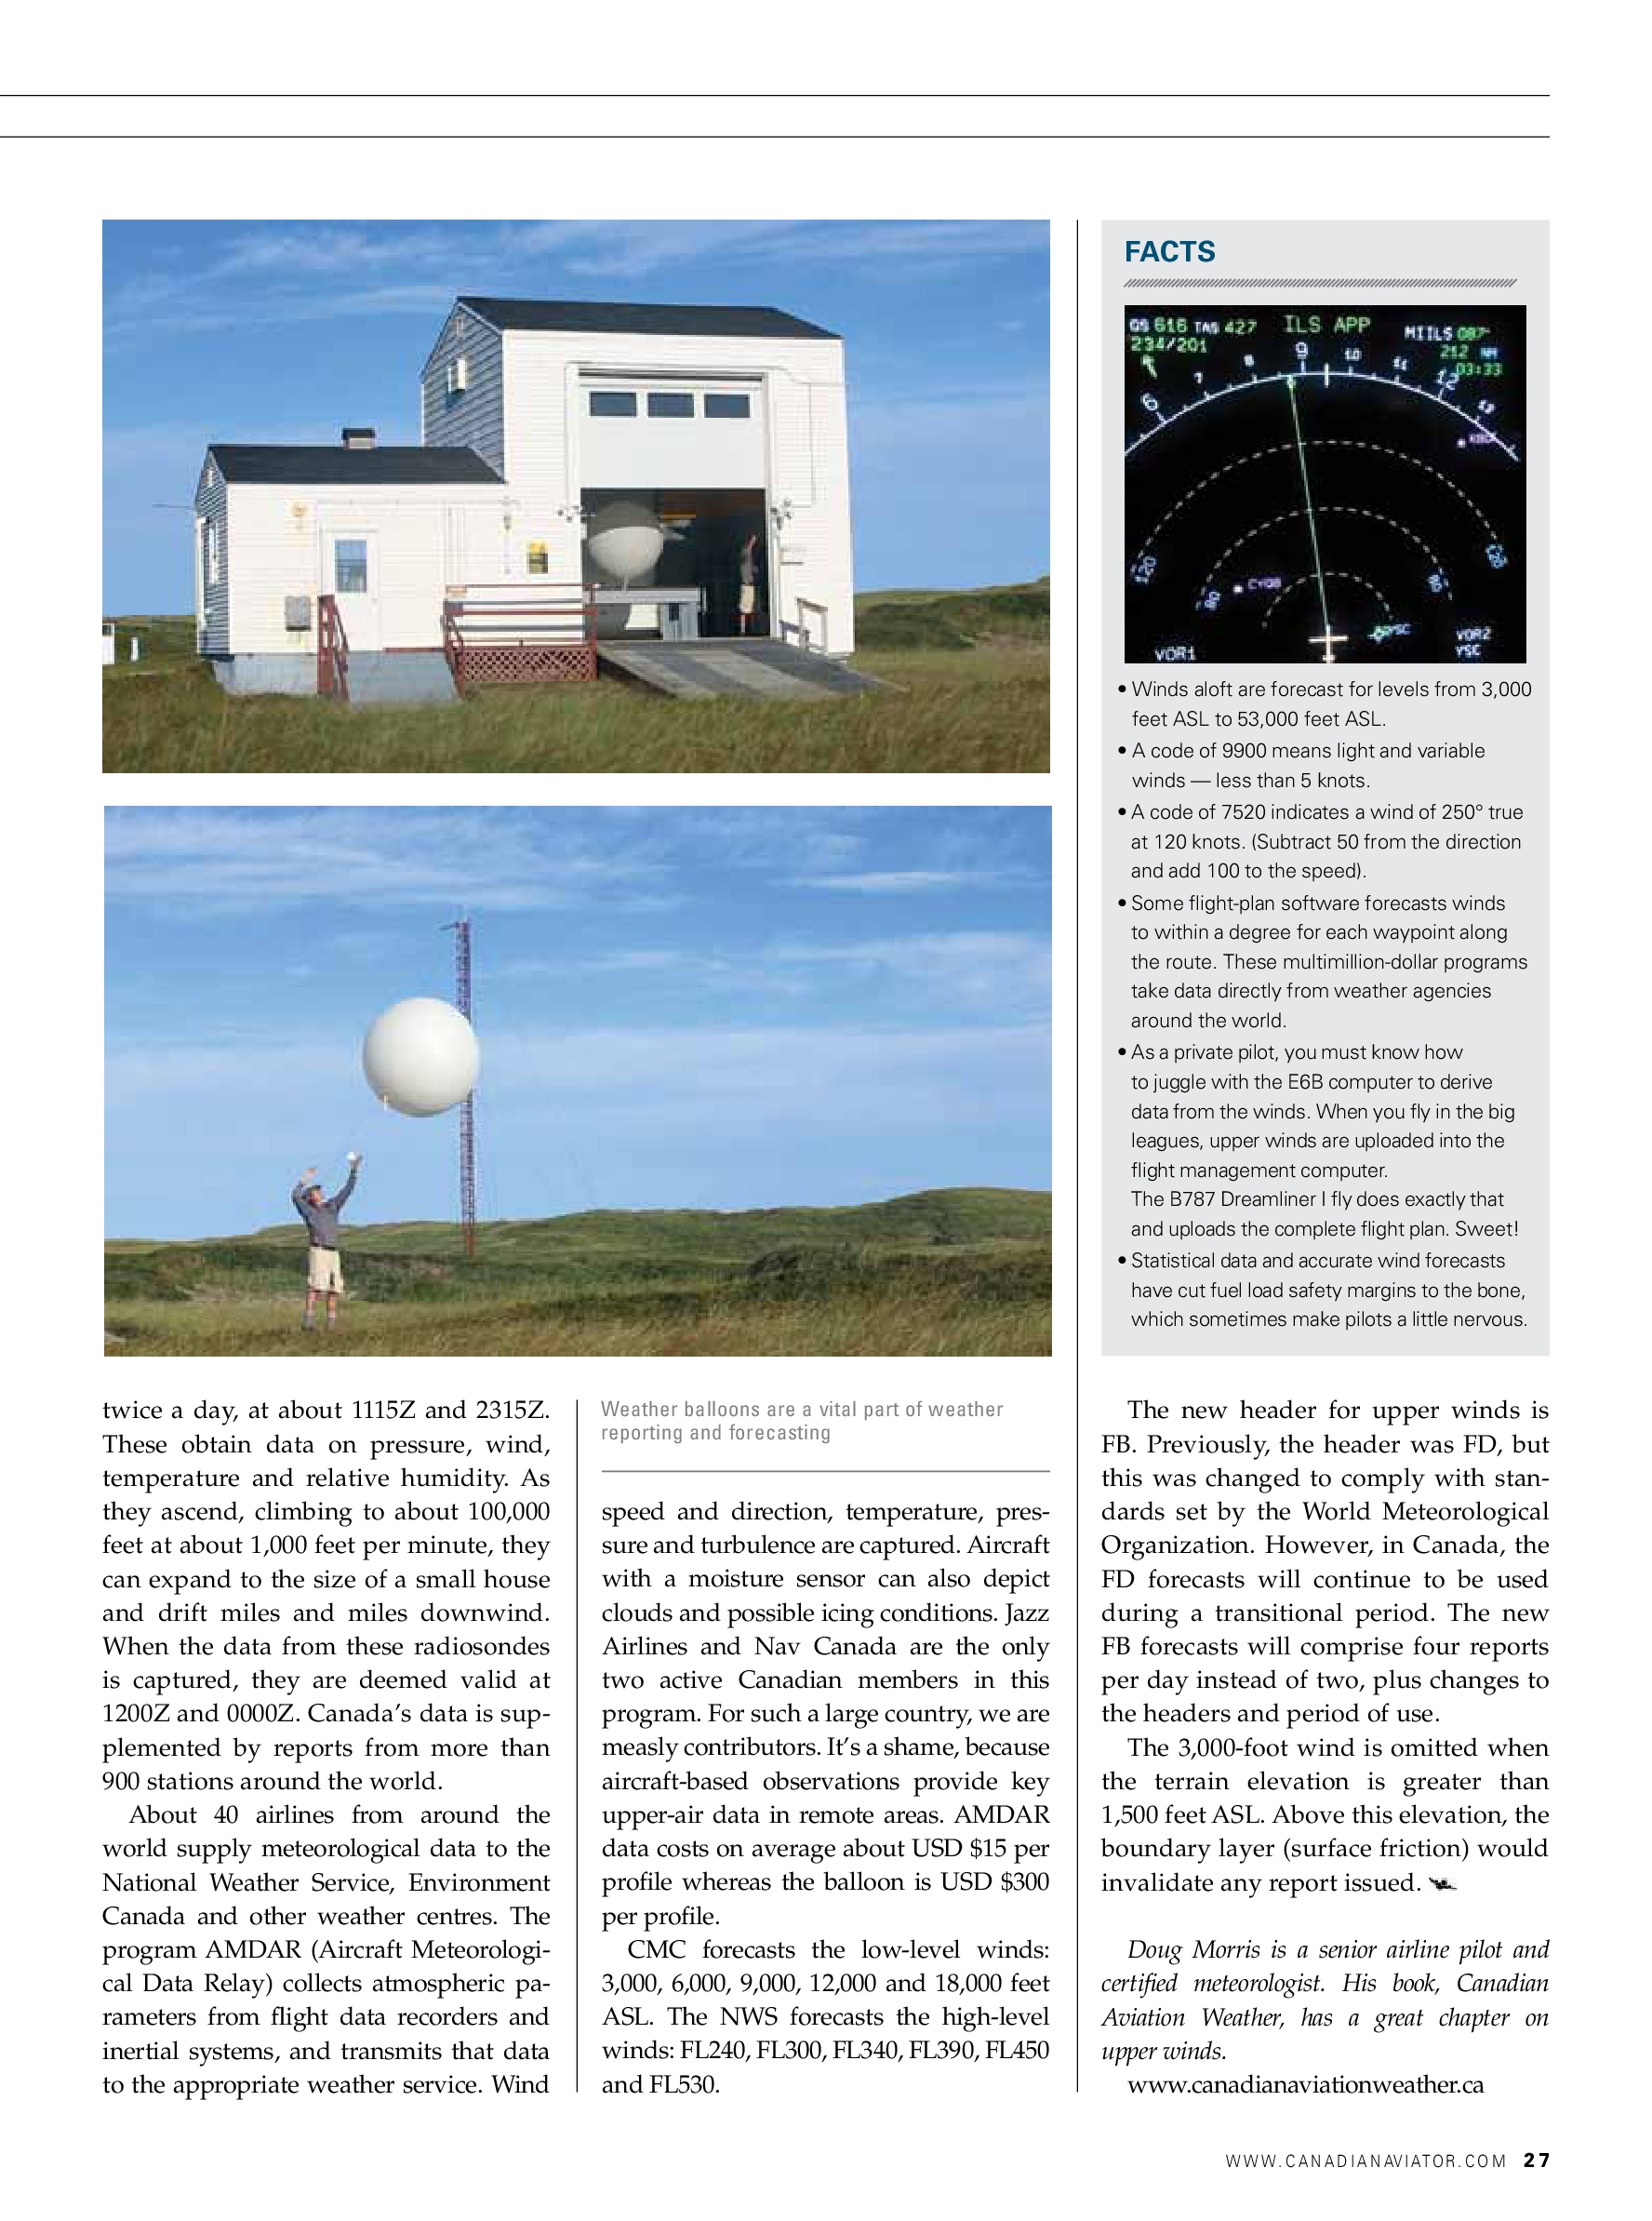 Again, the pics are missing captions. The two radiosonde pics originated from Sable Island. I spent a month out there when I had hair. Plus, we used to buzz the Island when we finished our cable patrol in a Navajo. The top right pic depicts 201 winds I encountered in the Airbus 320. (Top left corner of the pic).